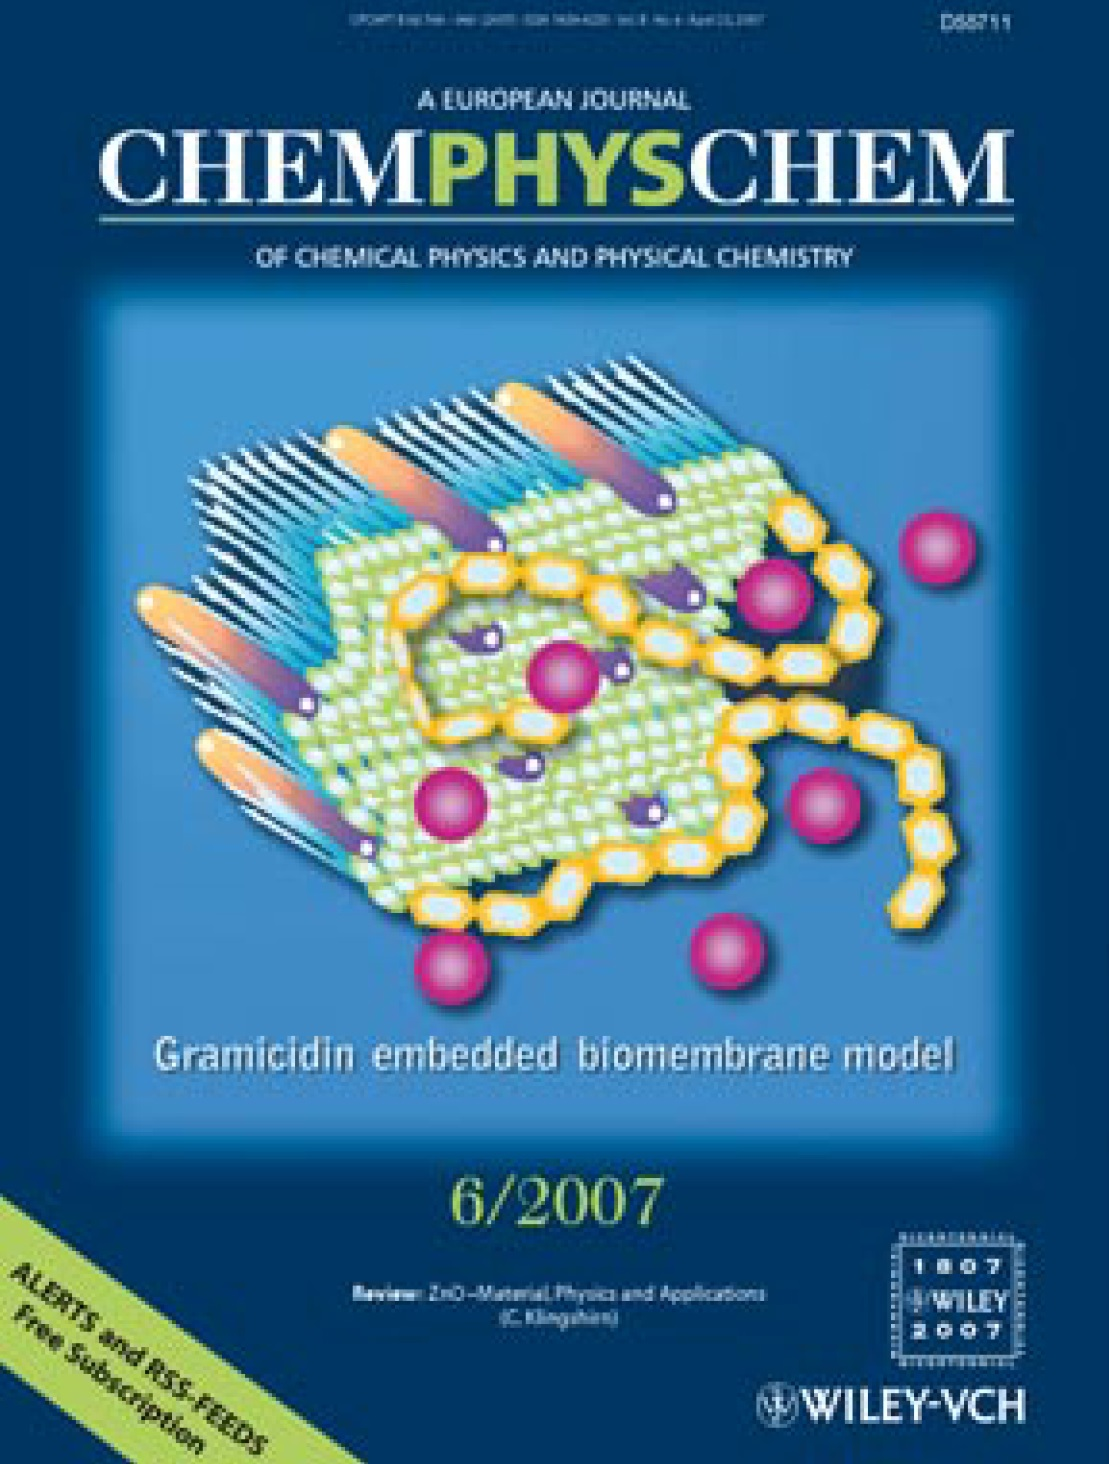 chemphyschem_cover